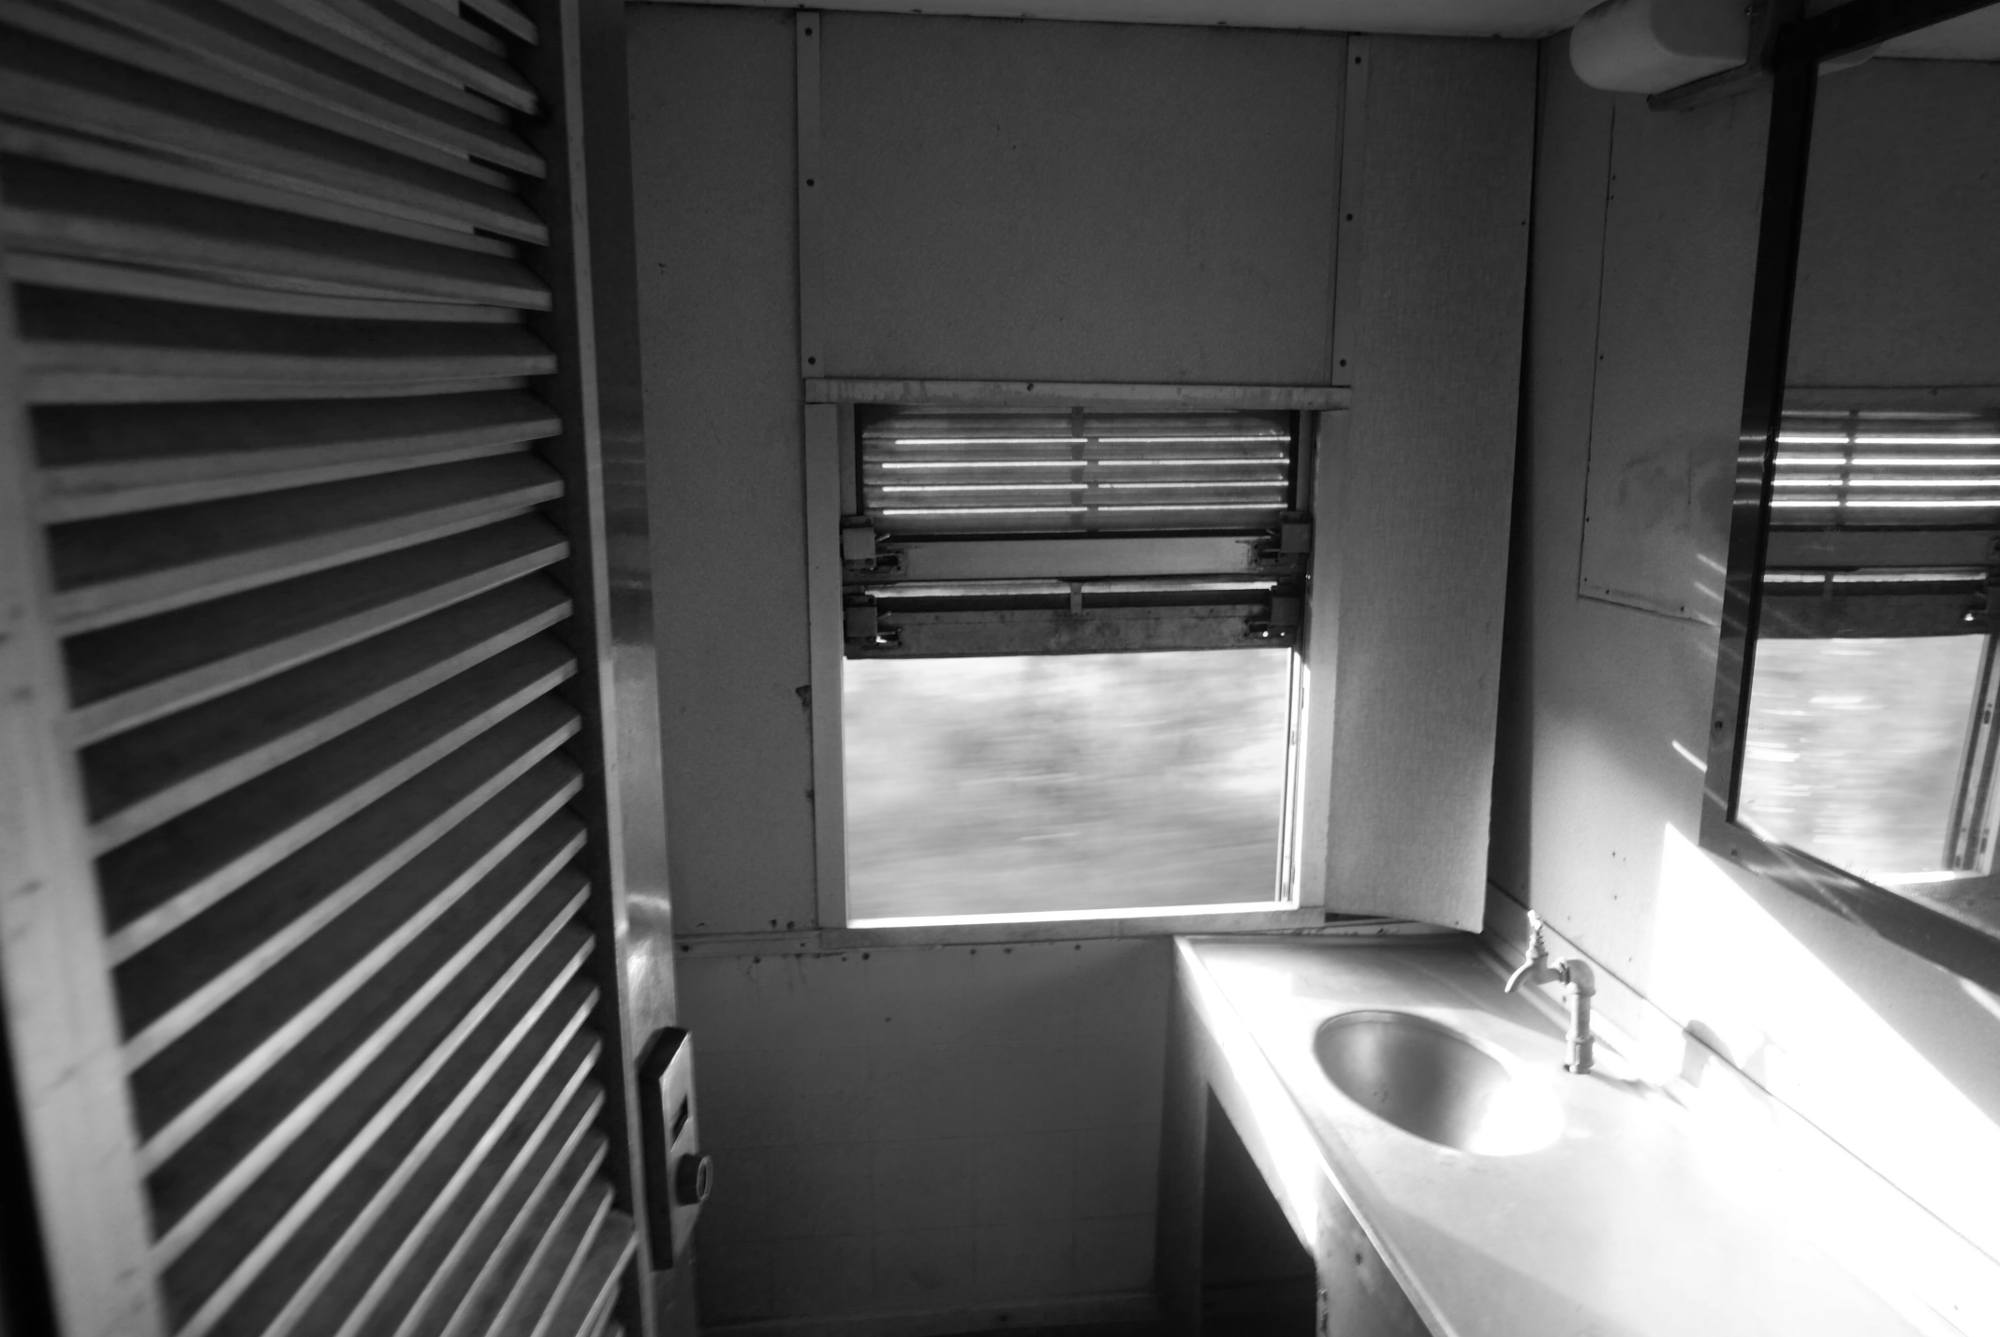 The washroom, Tazara train